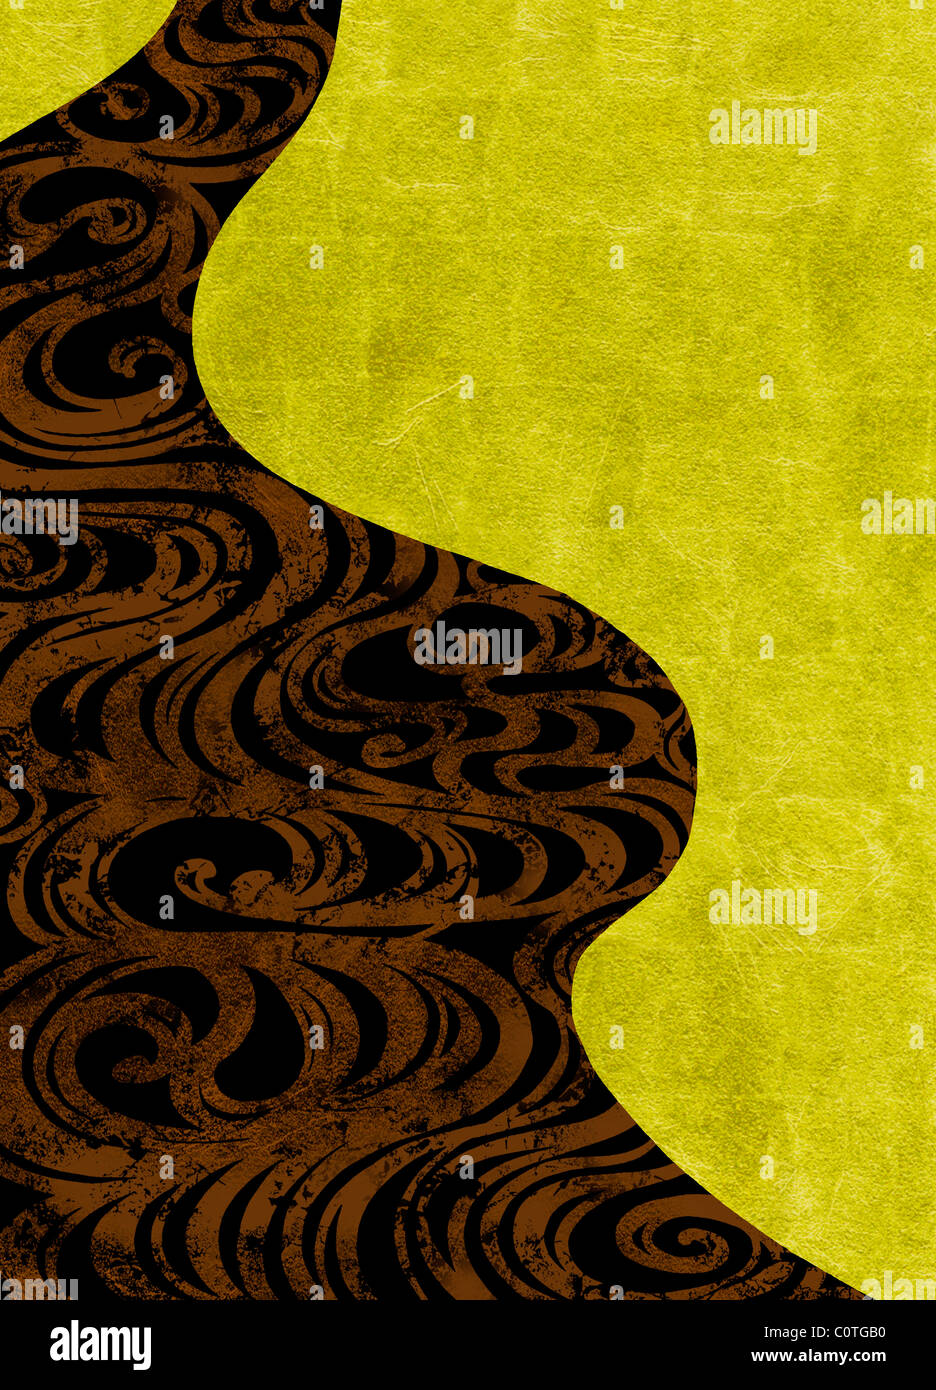 Swirls on Gold and Black Backgrounds - Stock Image